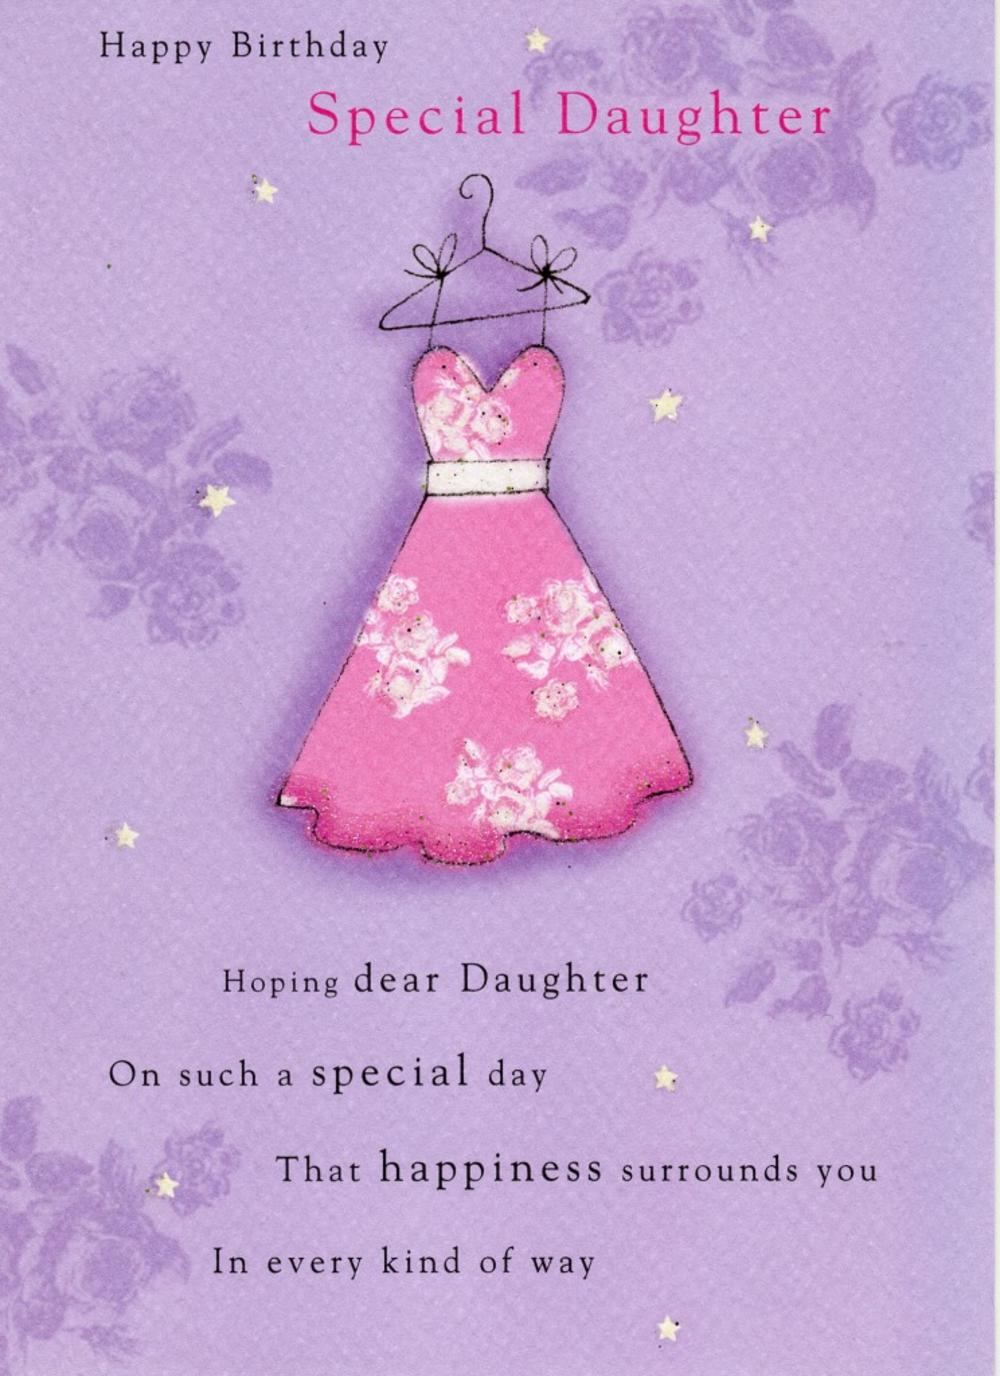 Special Daughter Birthday Greeting Card | Cards | Love Kates